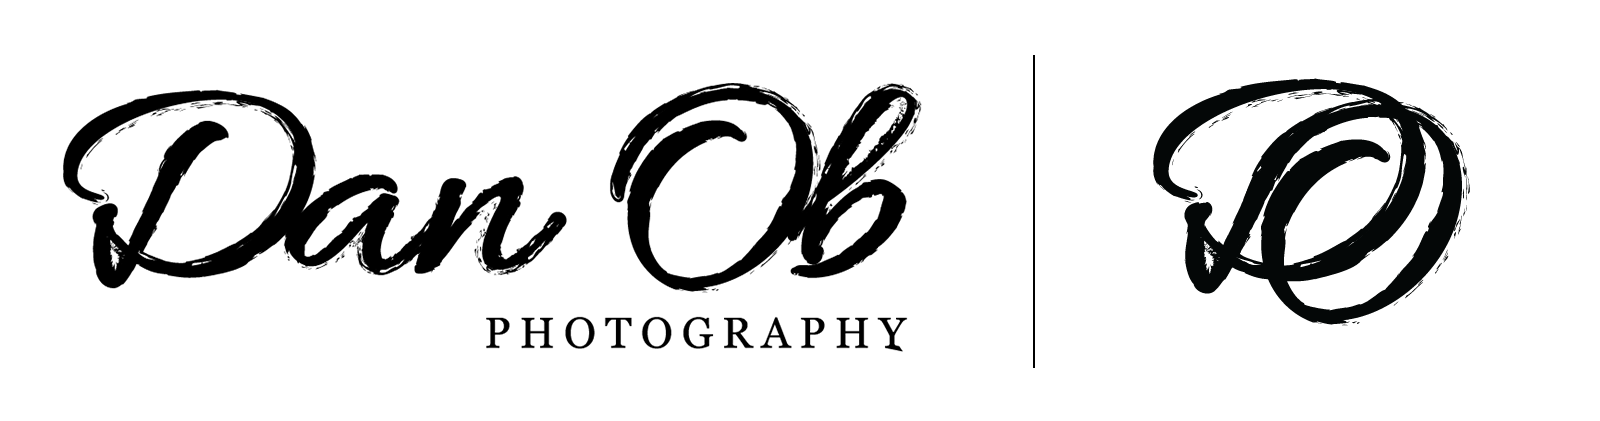 - Dan Ob Photography is a Boston-based photographer who was in need of a brand. He wanted a logo that spoke to an edgy and creative outlook, but brought in the traditional elements of photography.